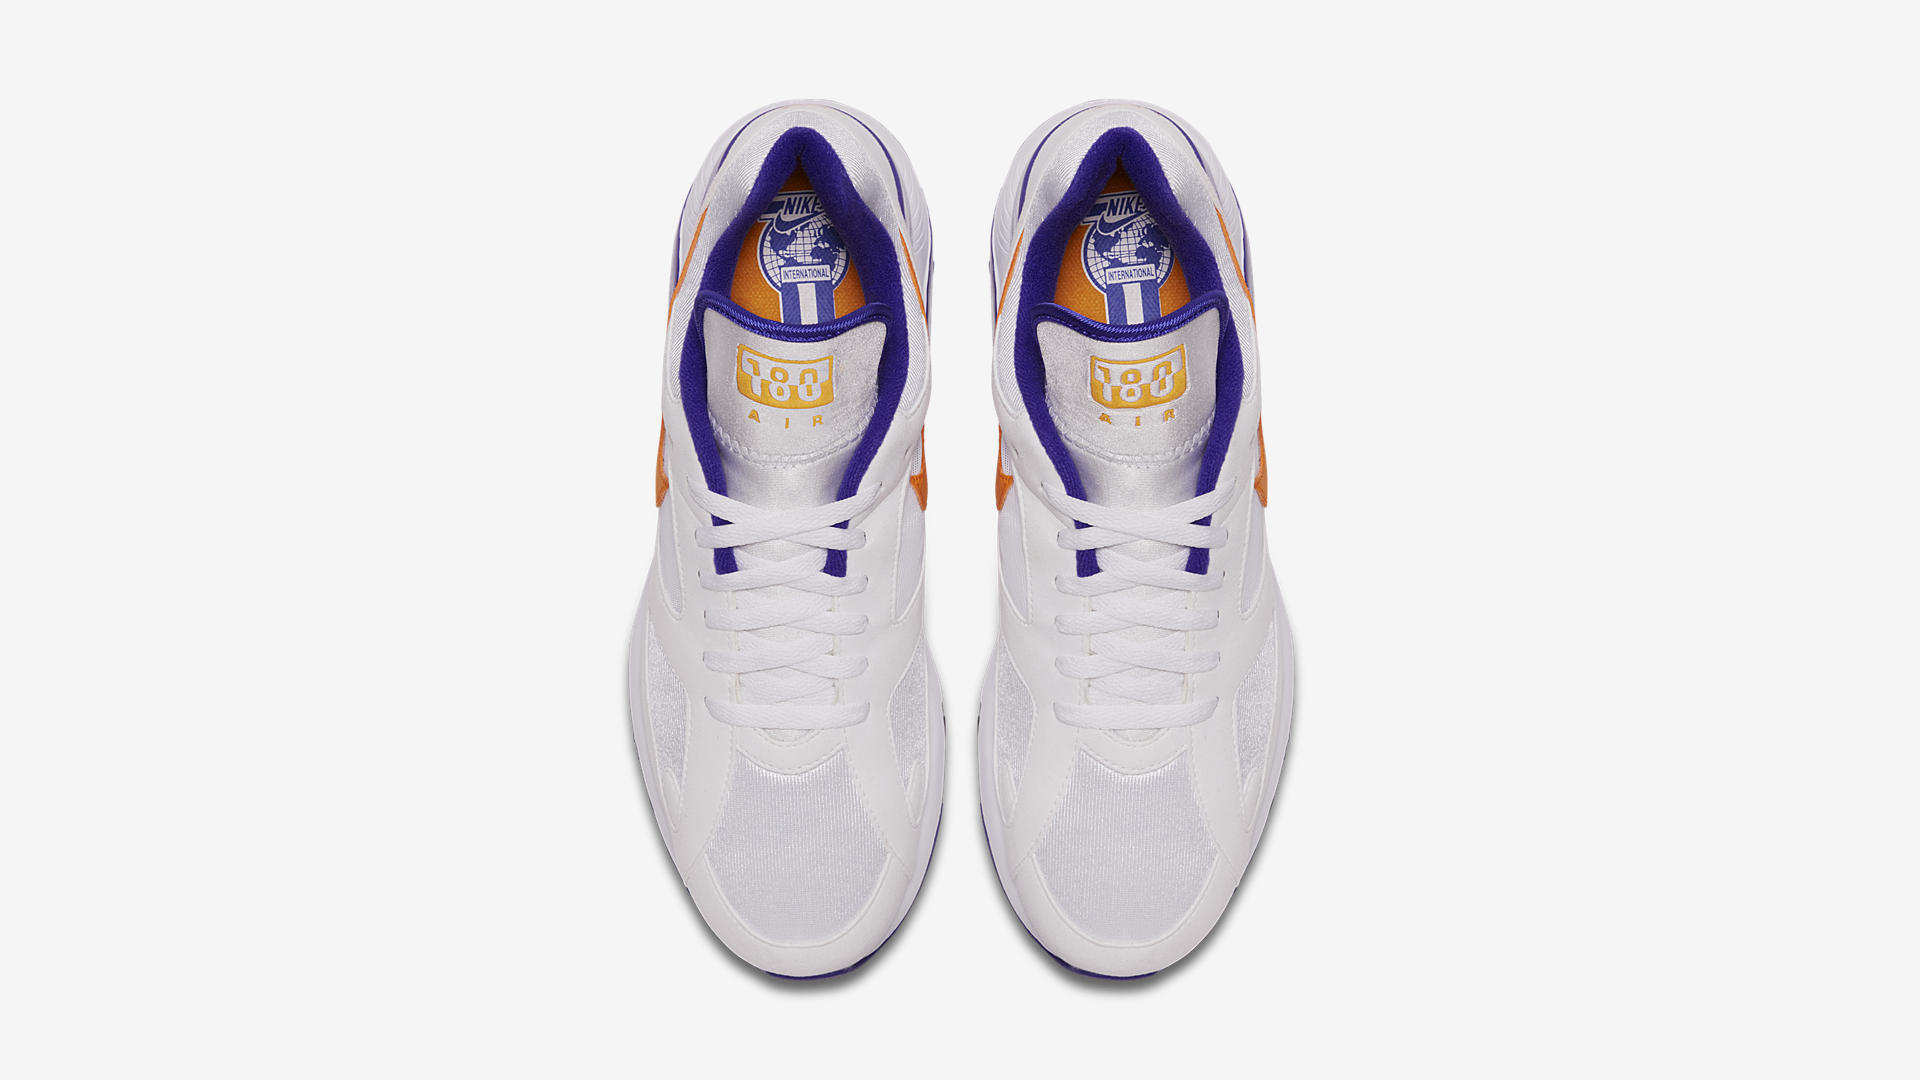 615287 101 Nike Air Max 180 Bright Ceramic 3